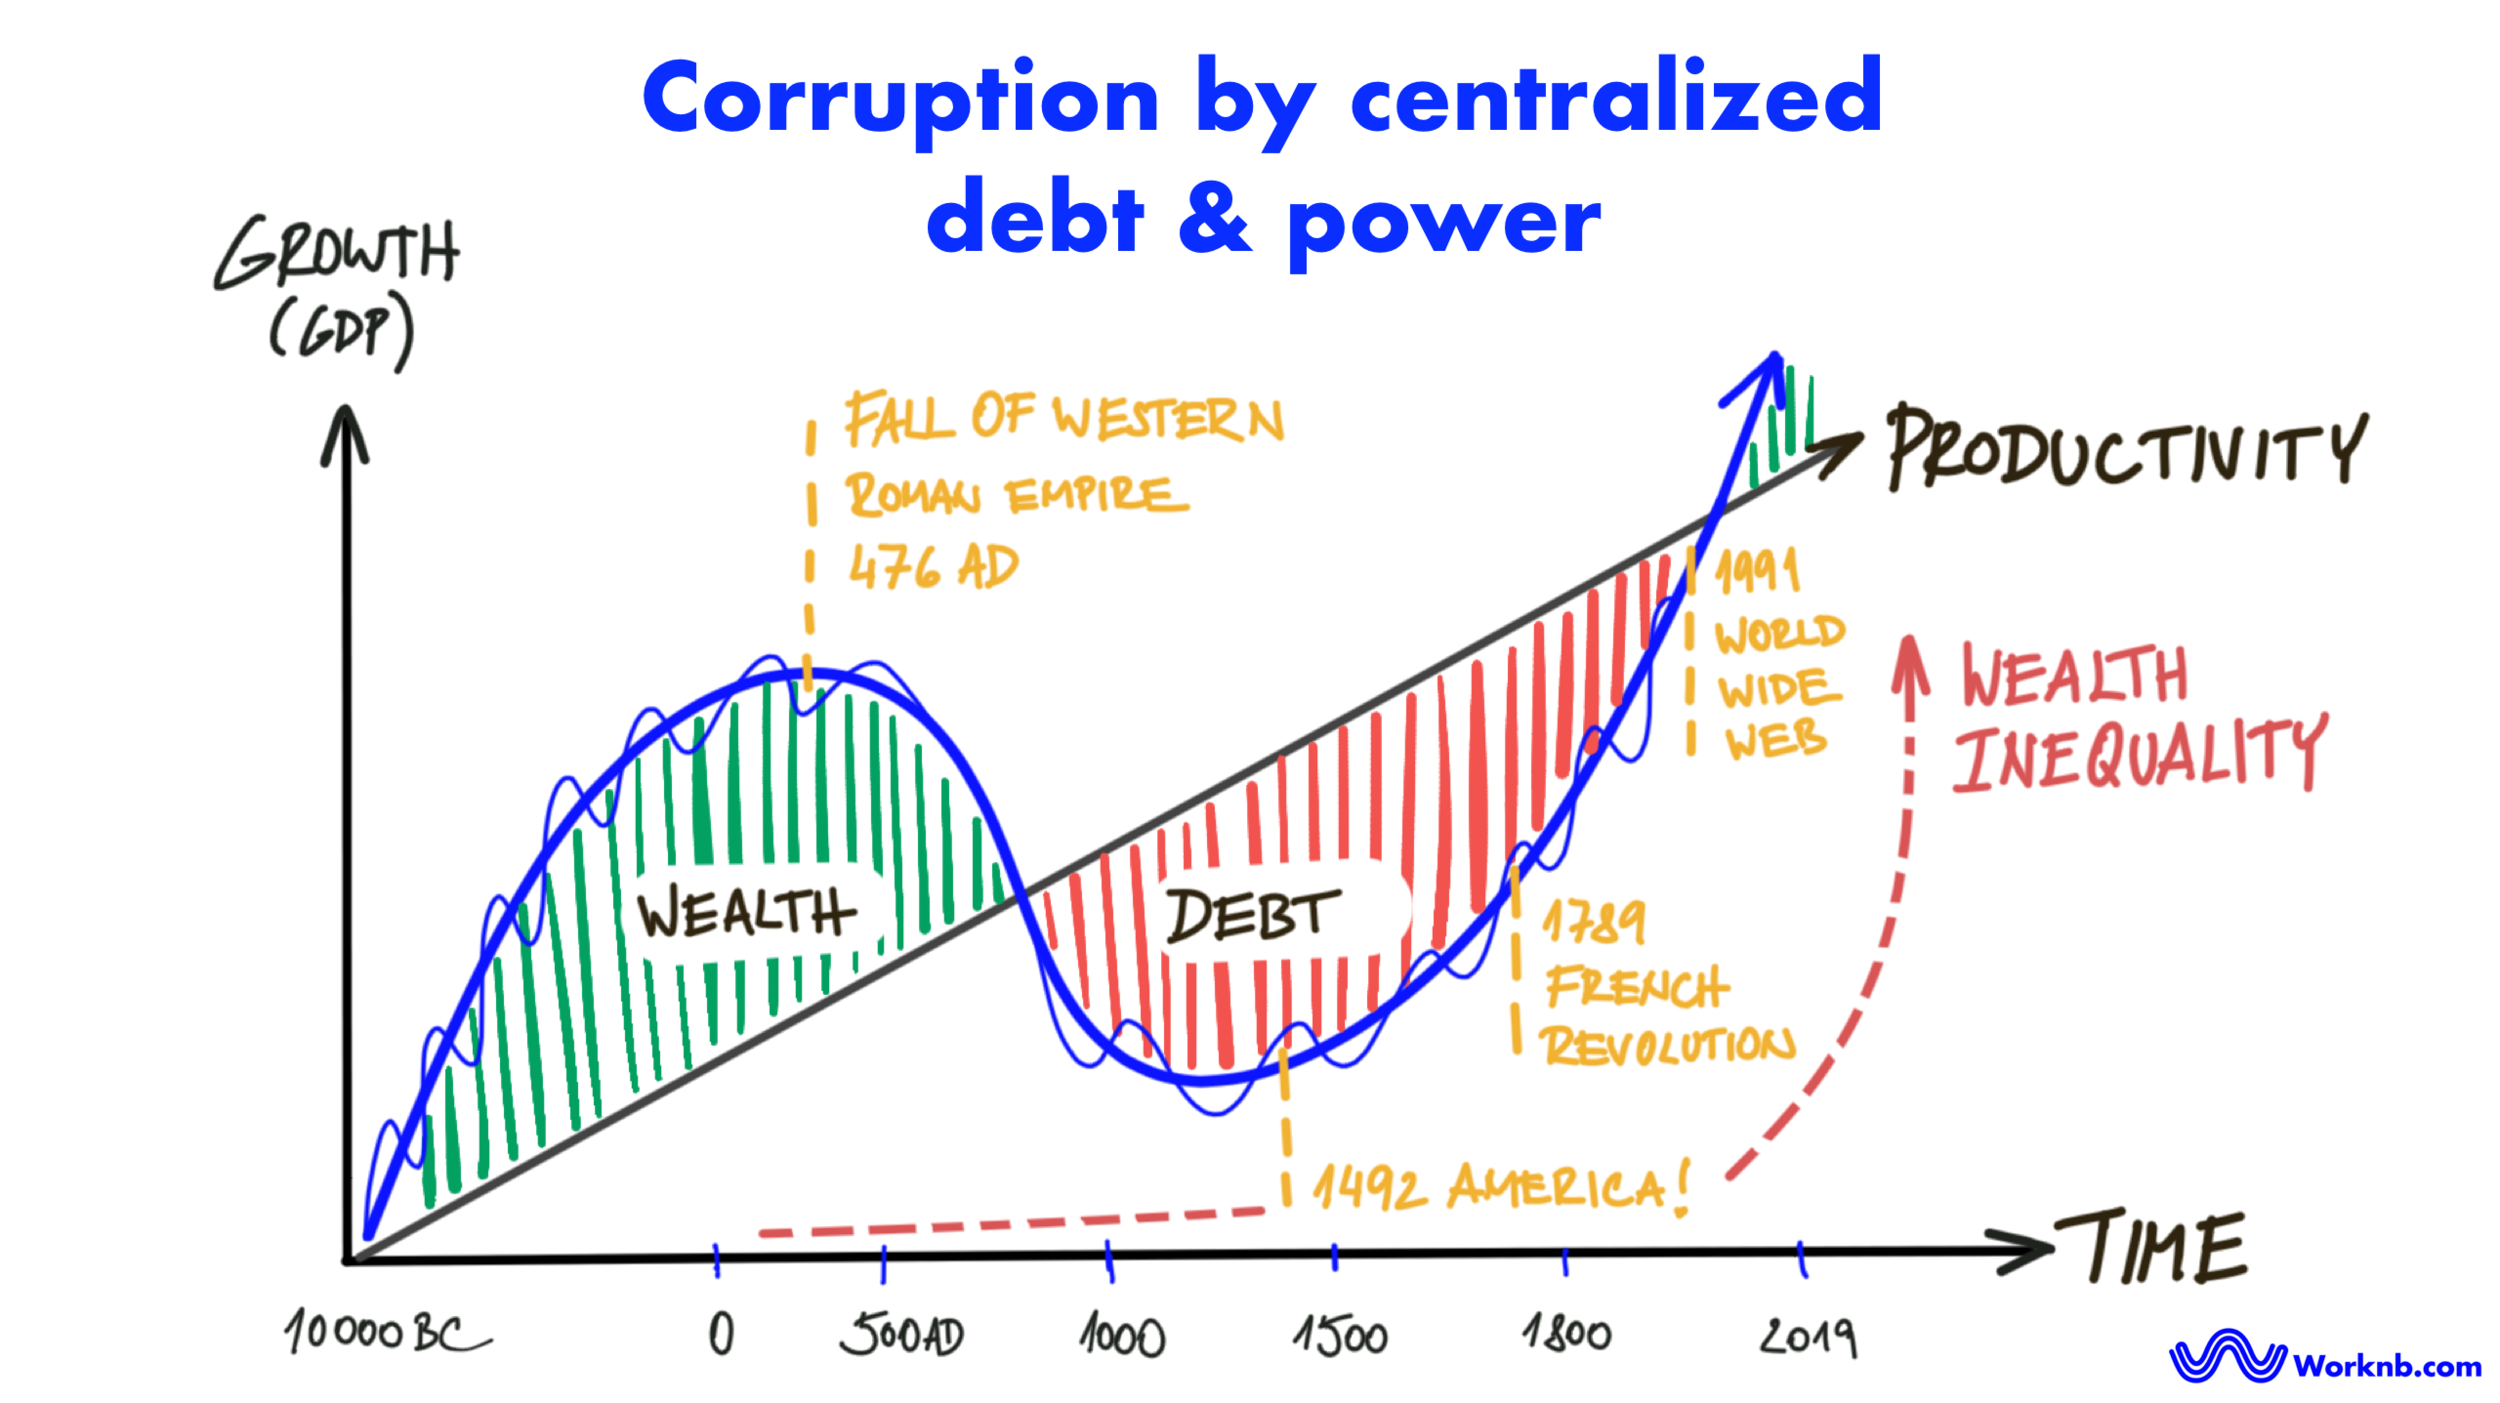 Corruption by centralized debt & power | Worknb.com